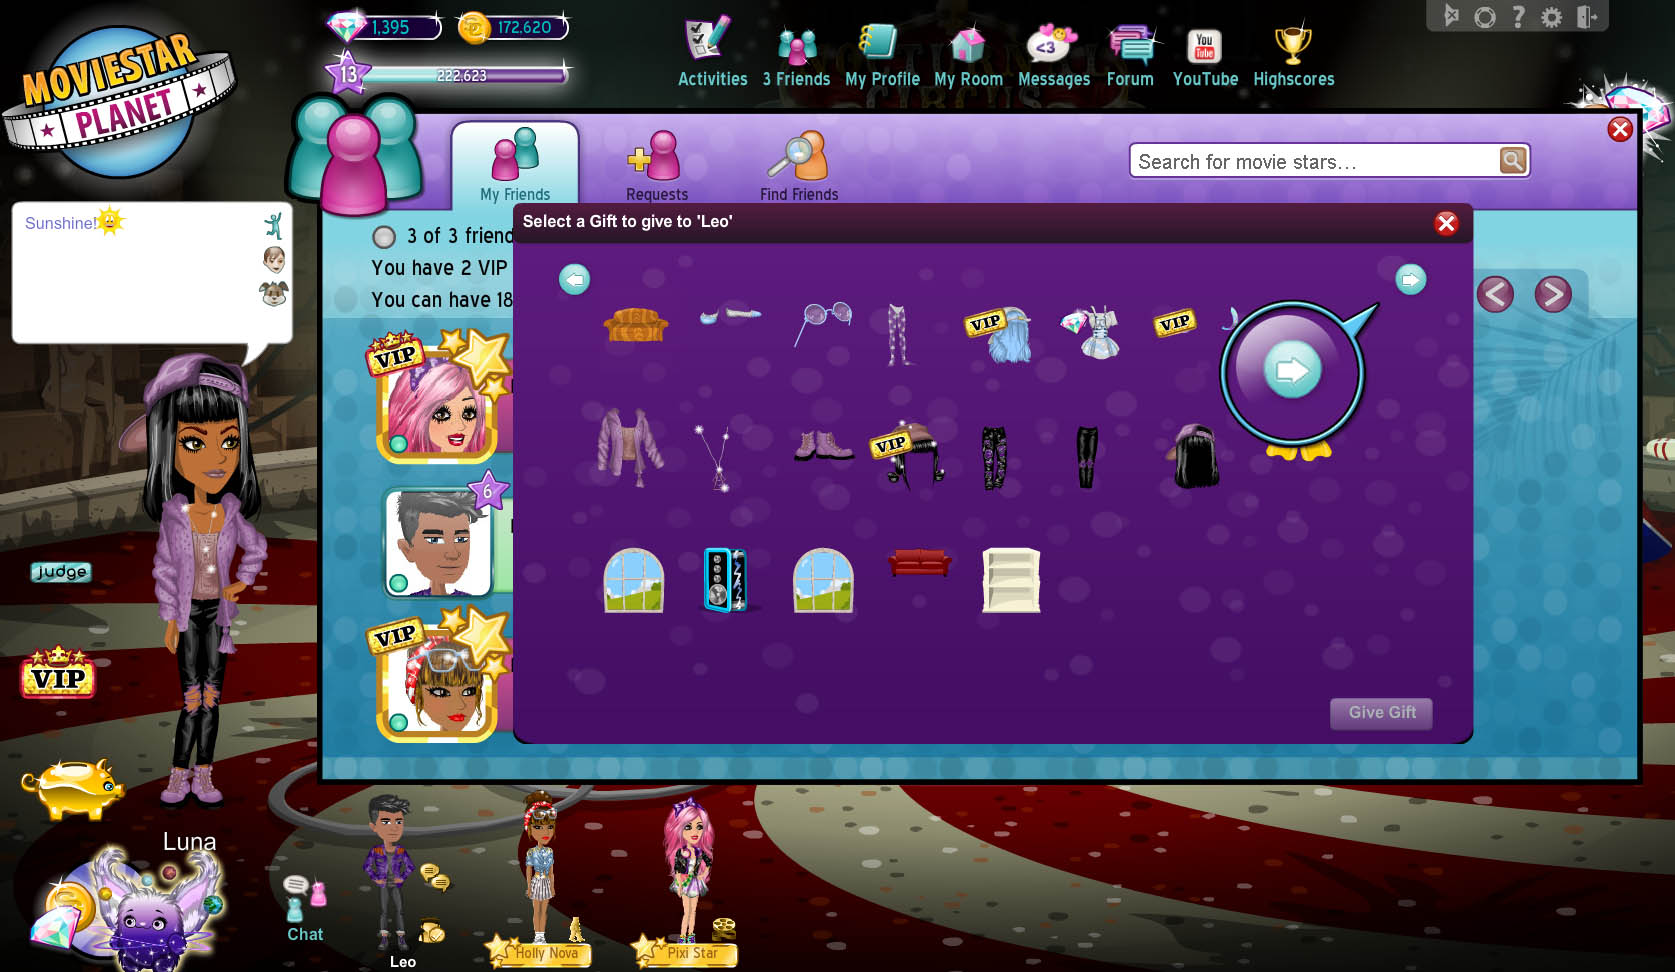 How Do I Give Vip To Other Movie Stars Moviestarplanet